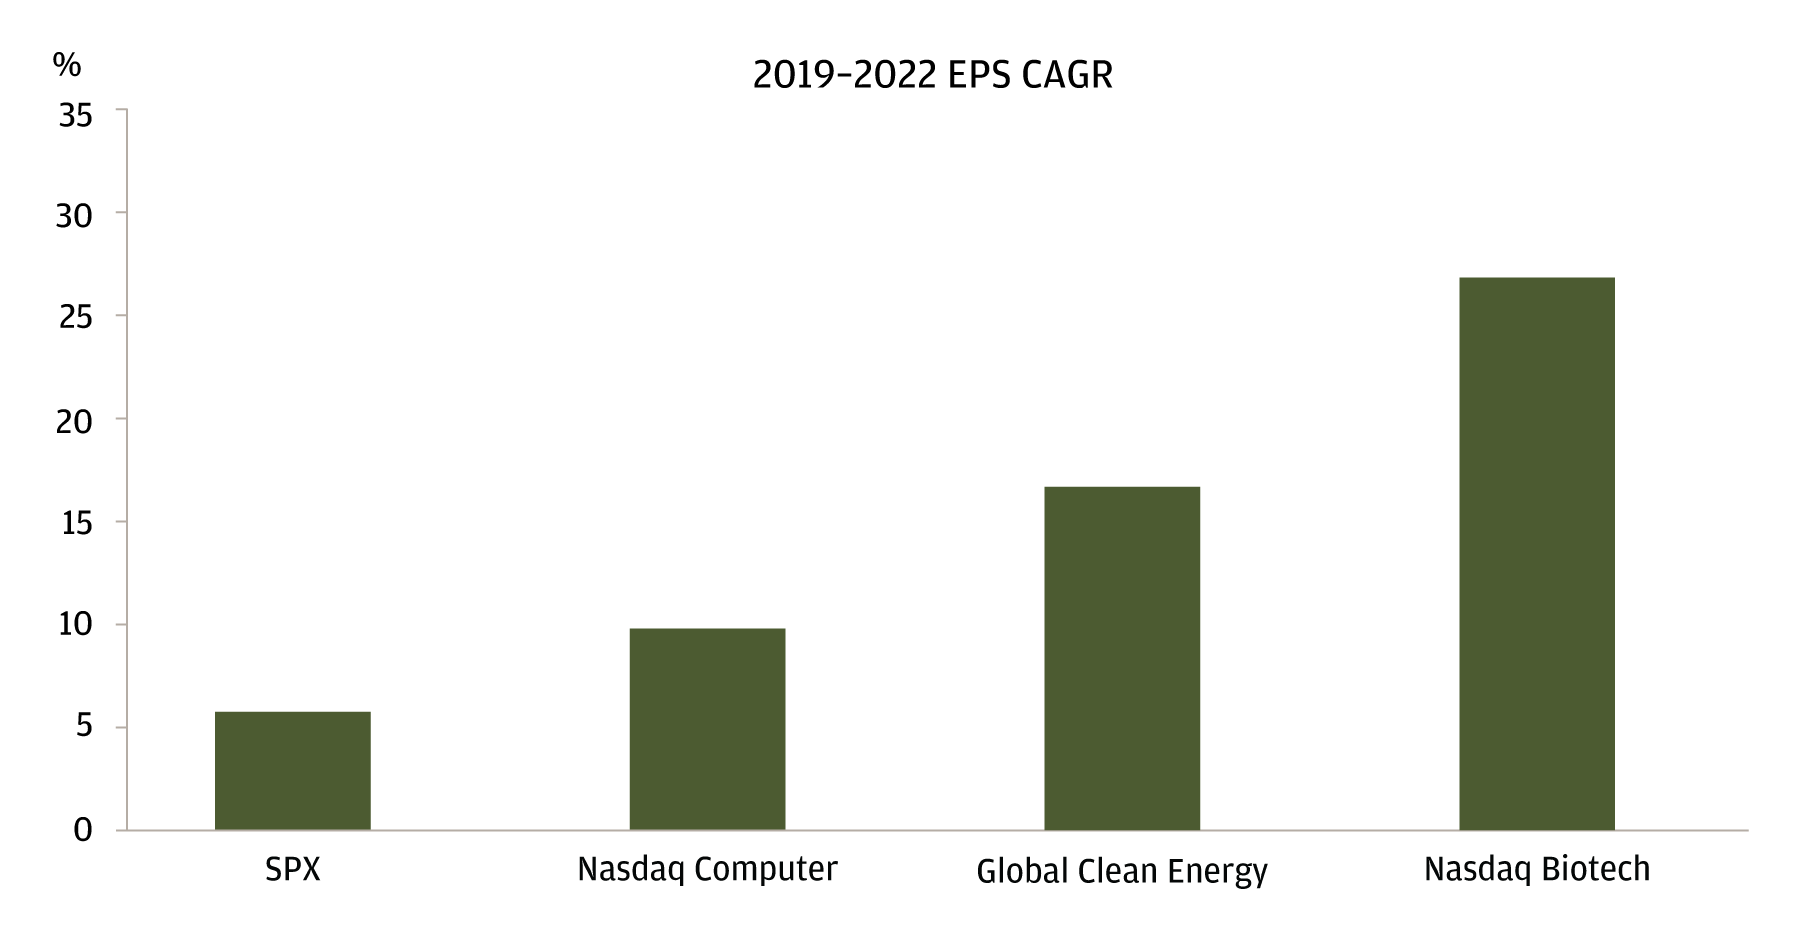 The bar chart shows the 2019-2022 EPS CAGR for the SPX, Nasdaq Computer, Global Clean Energy, and Nasdaq Biotech. The SPX has the lowest EPS CAGR for this time frame, showing that expecations are high for tech, biotech, and clean energy.